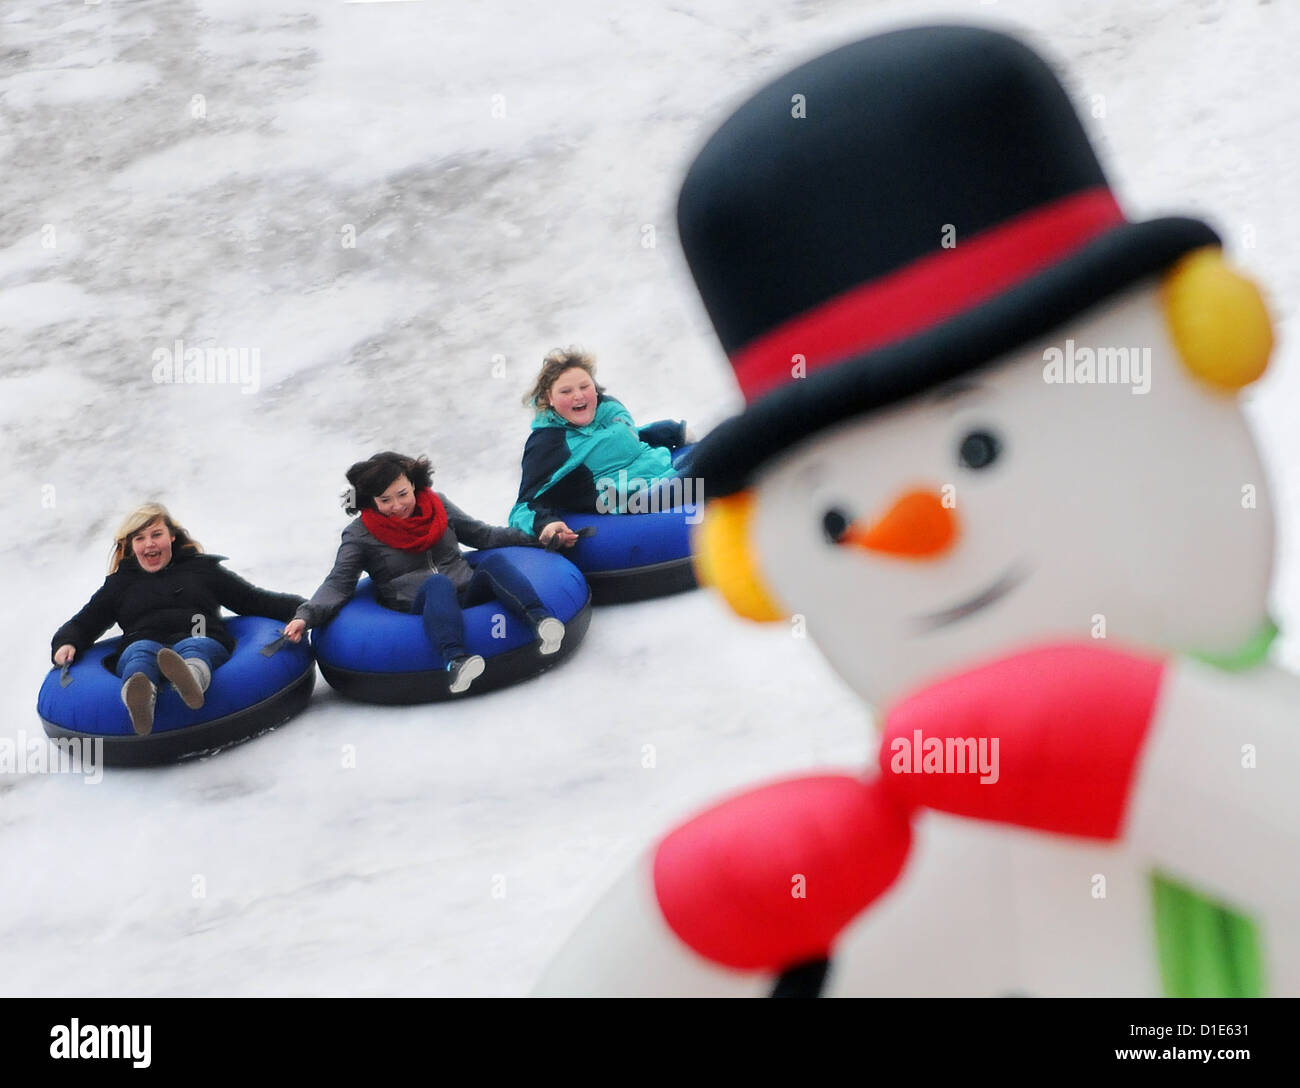 Chrissy, Caro and Ari (l-r) toboggan in giant hoops at the artificial snow hill on Potsdamer Platz in Berlin, Germany, - Stock Image